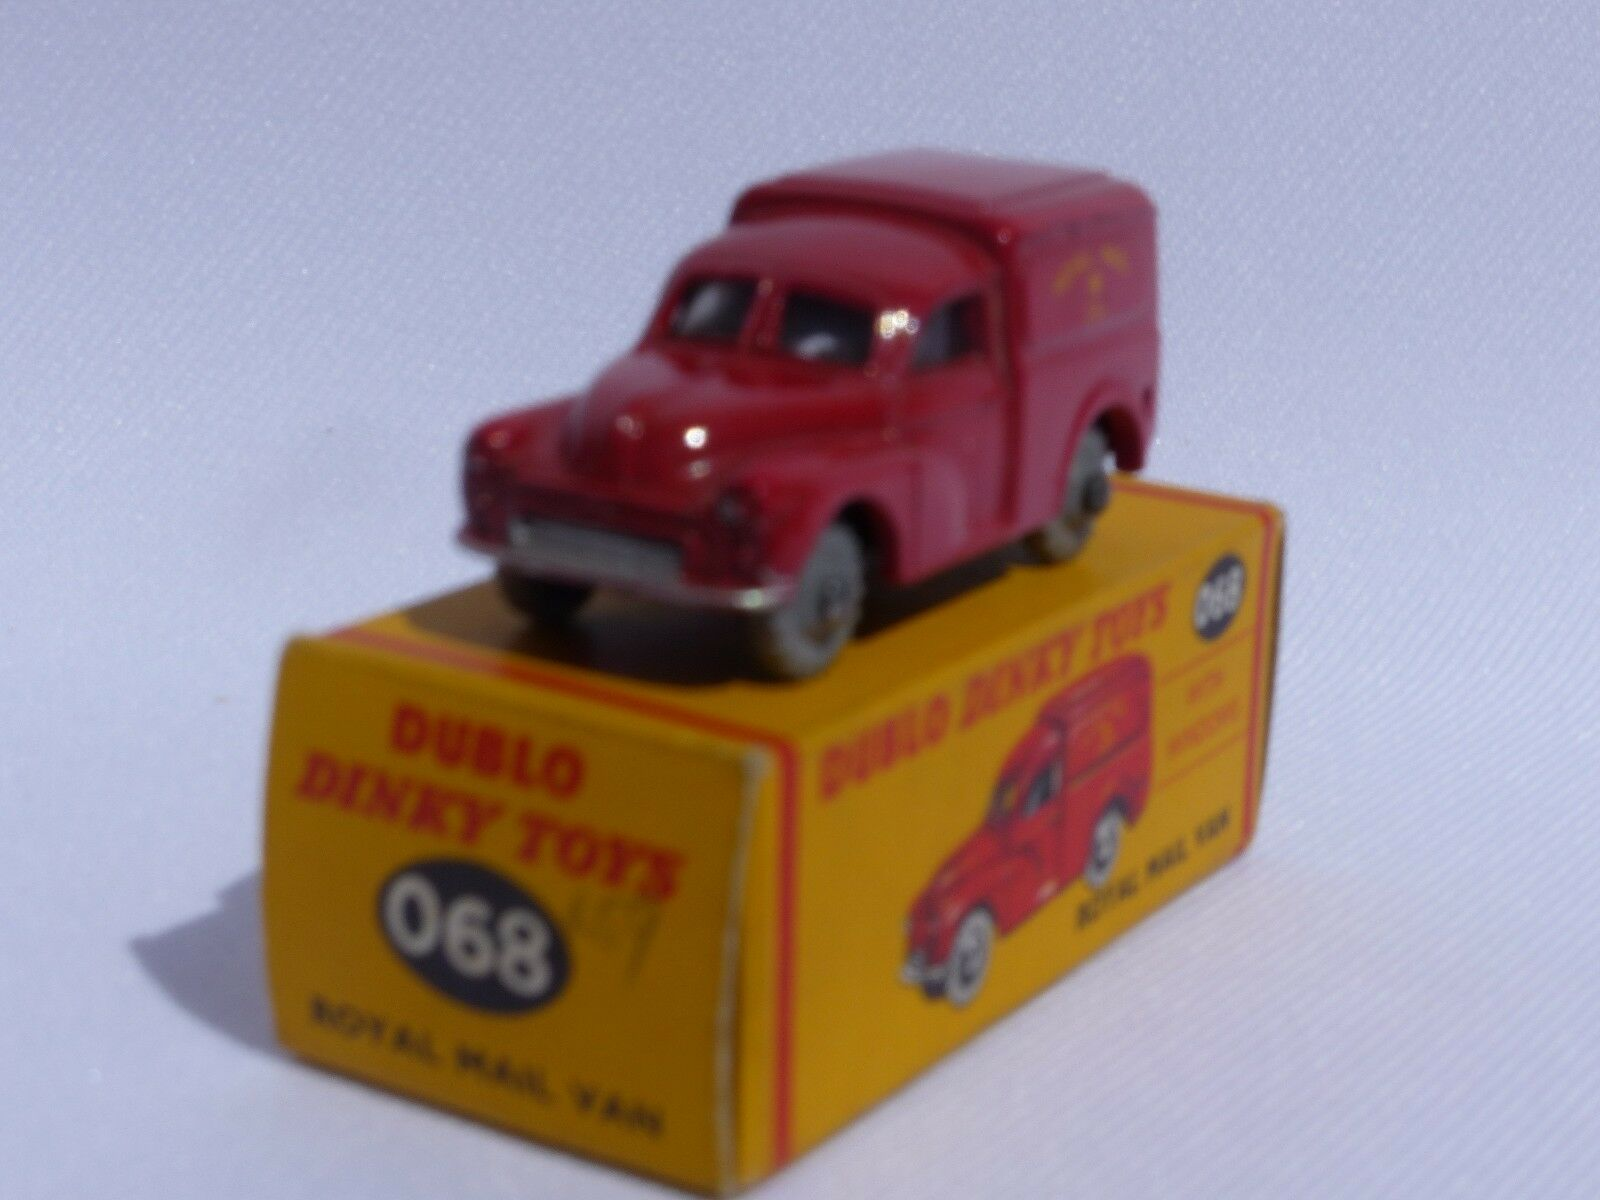 Dinky Dublo No 068 is the model of the Morris 100 Royal Mail van MB